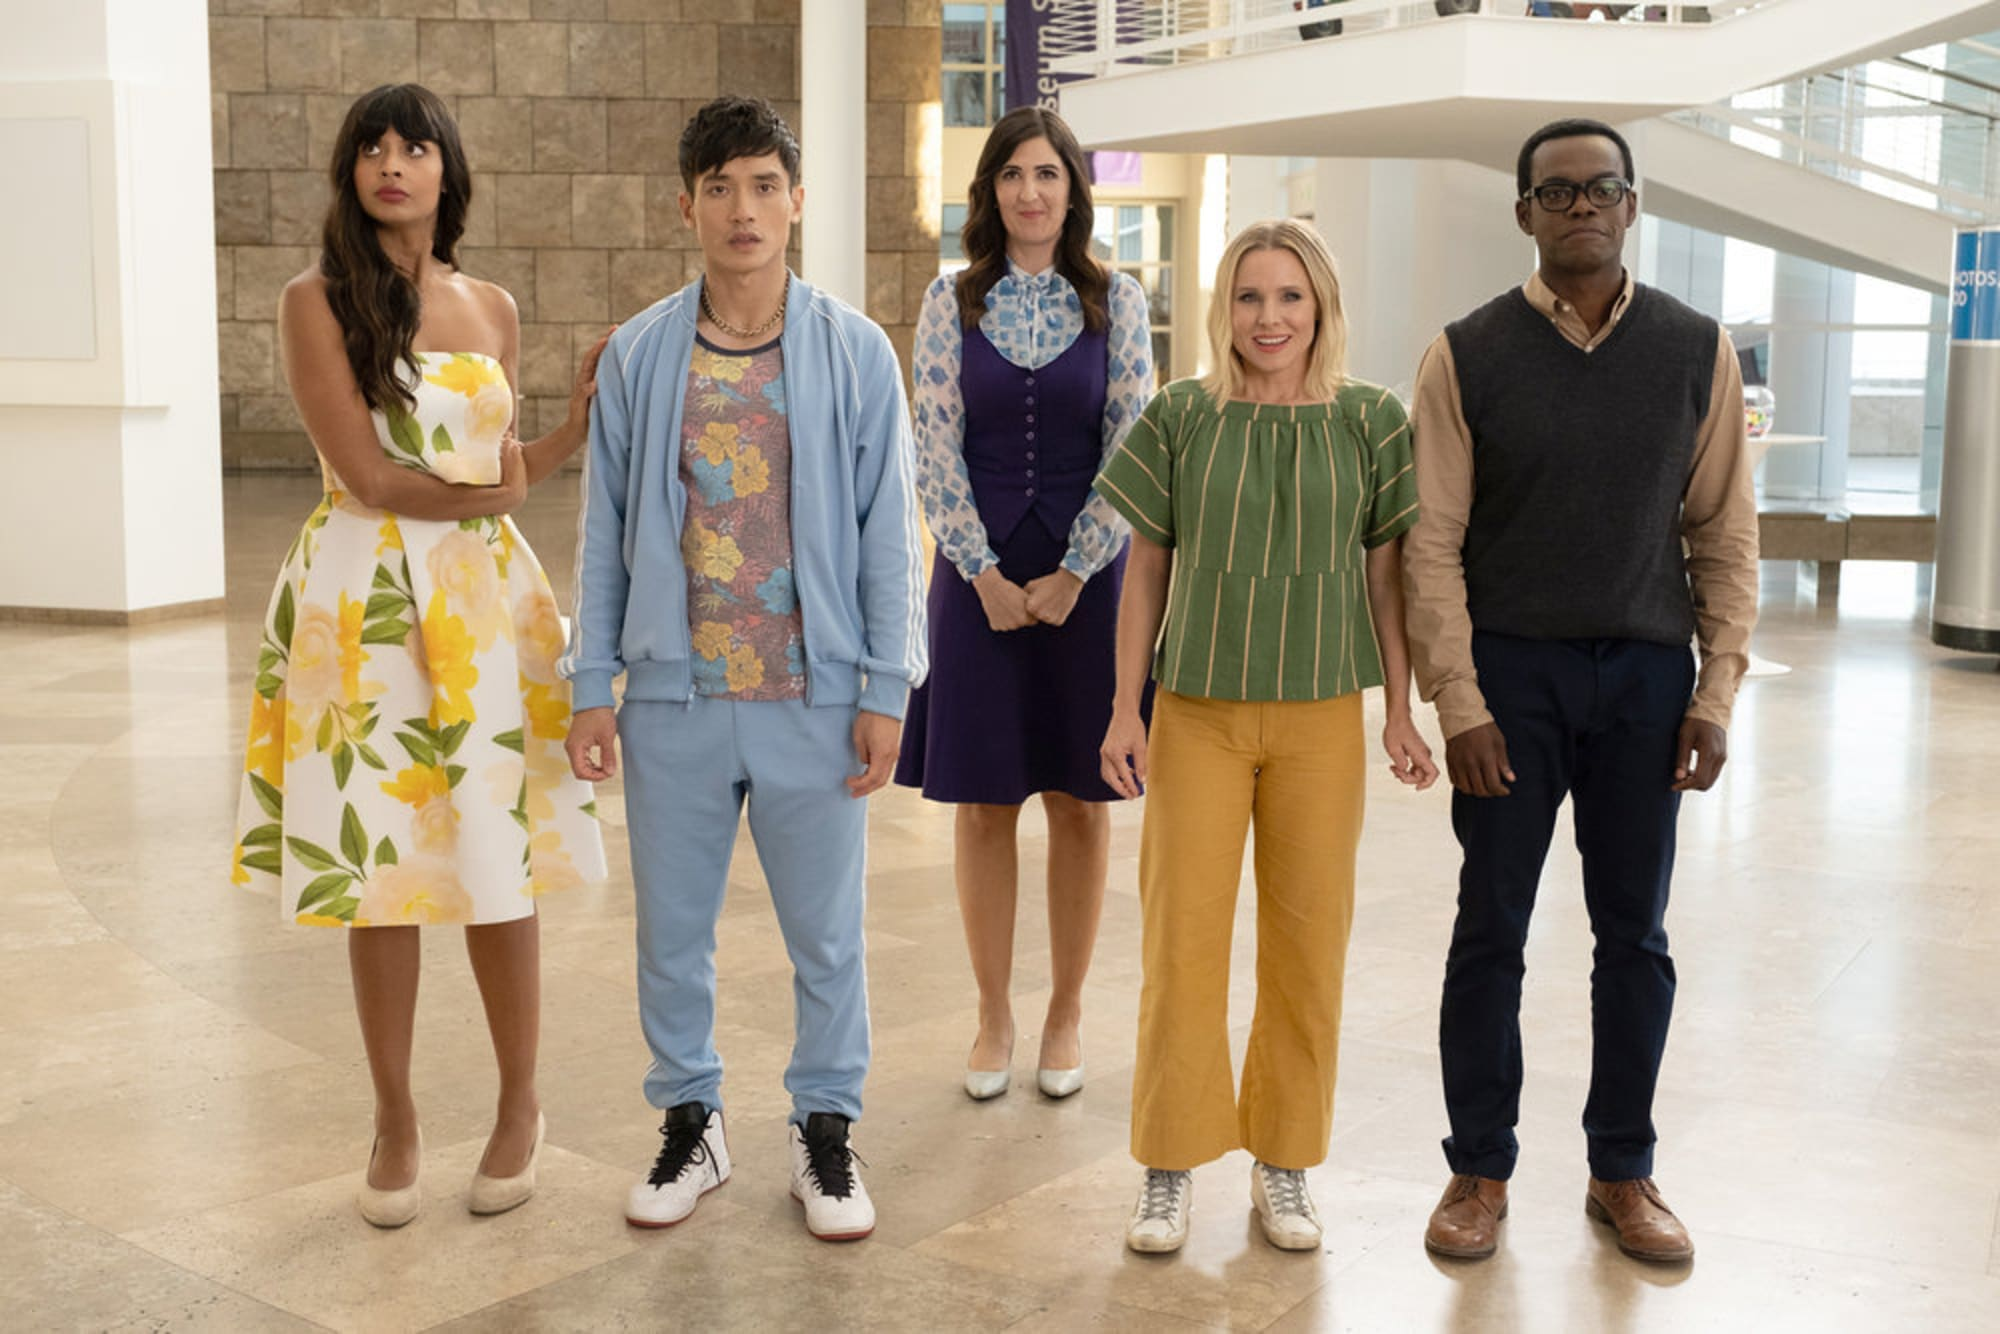 The Good Place season 4 is coming to Netflix tonight